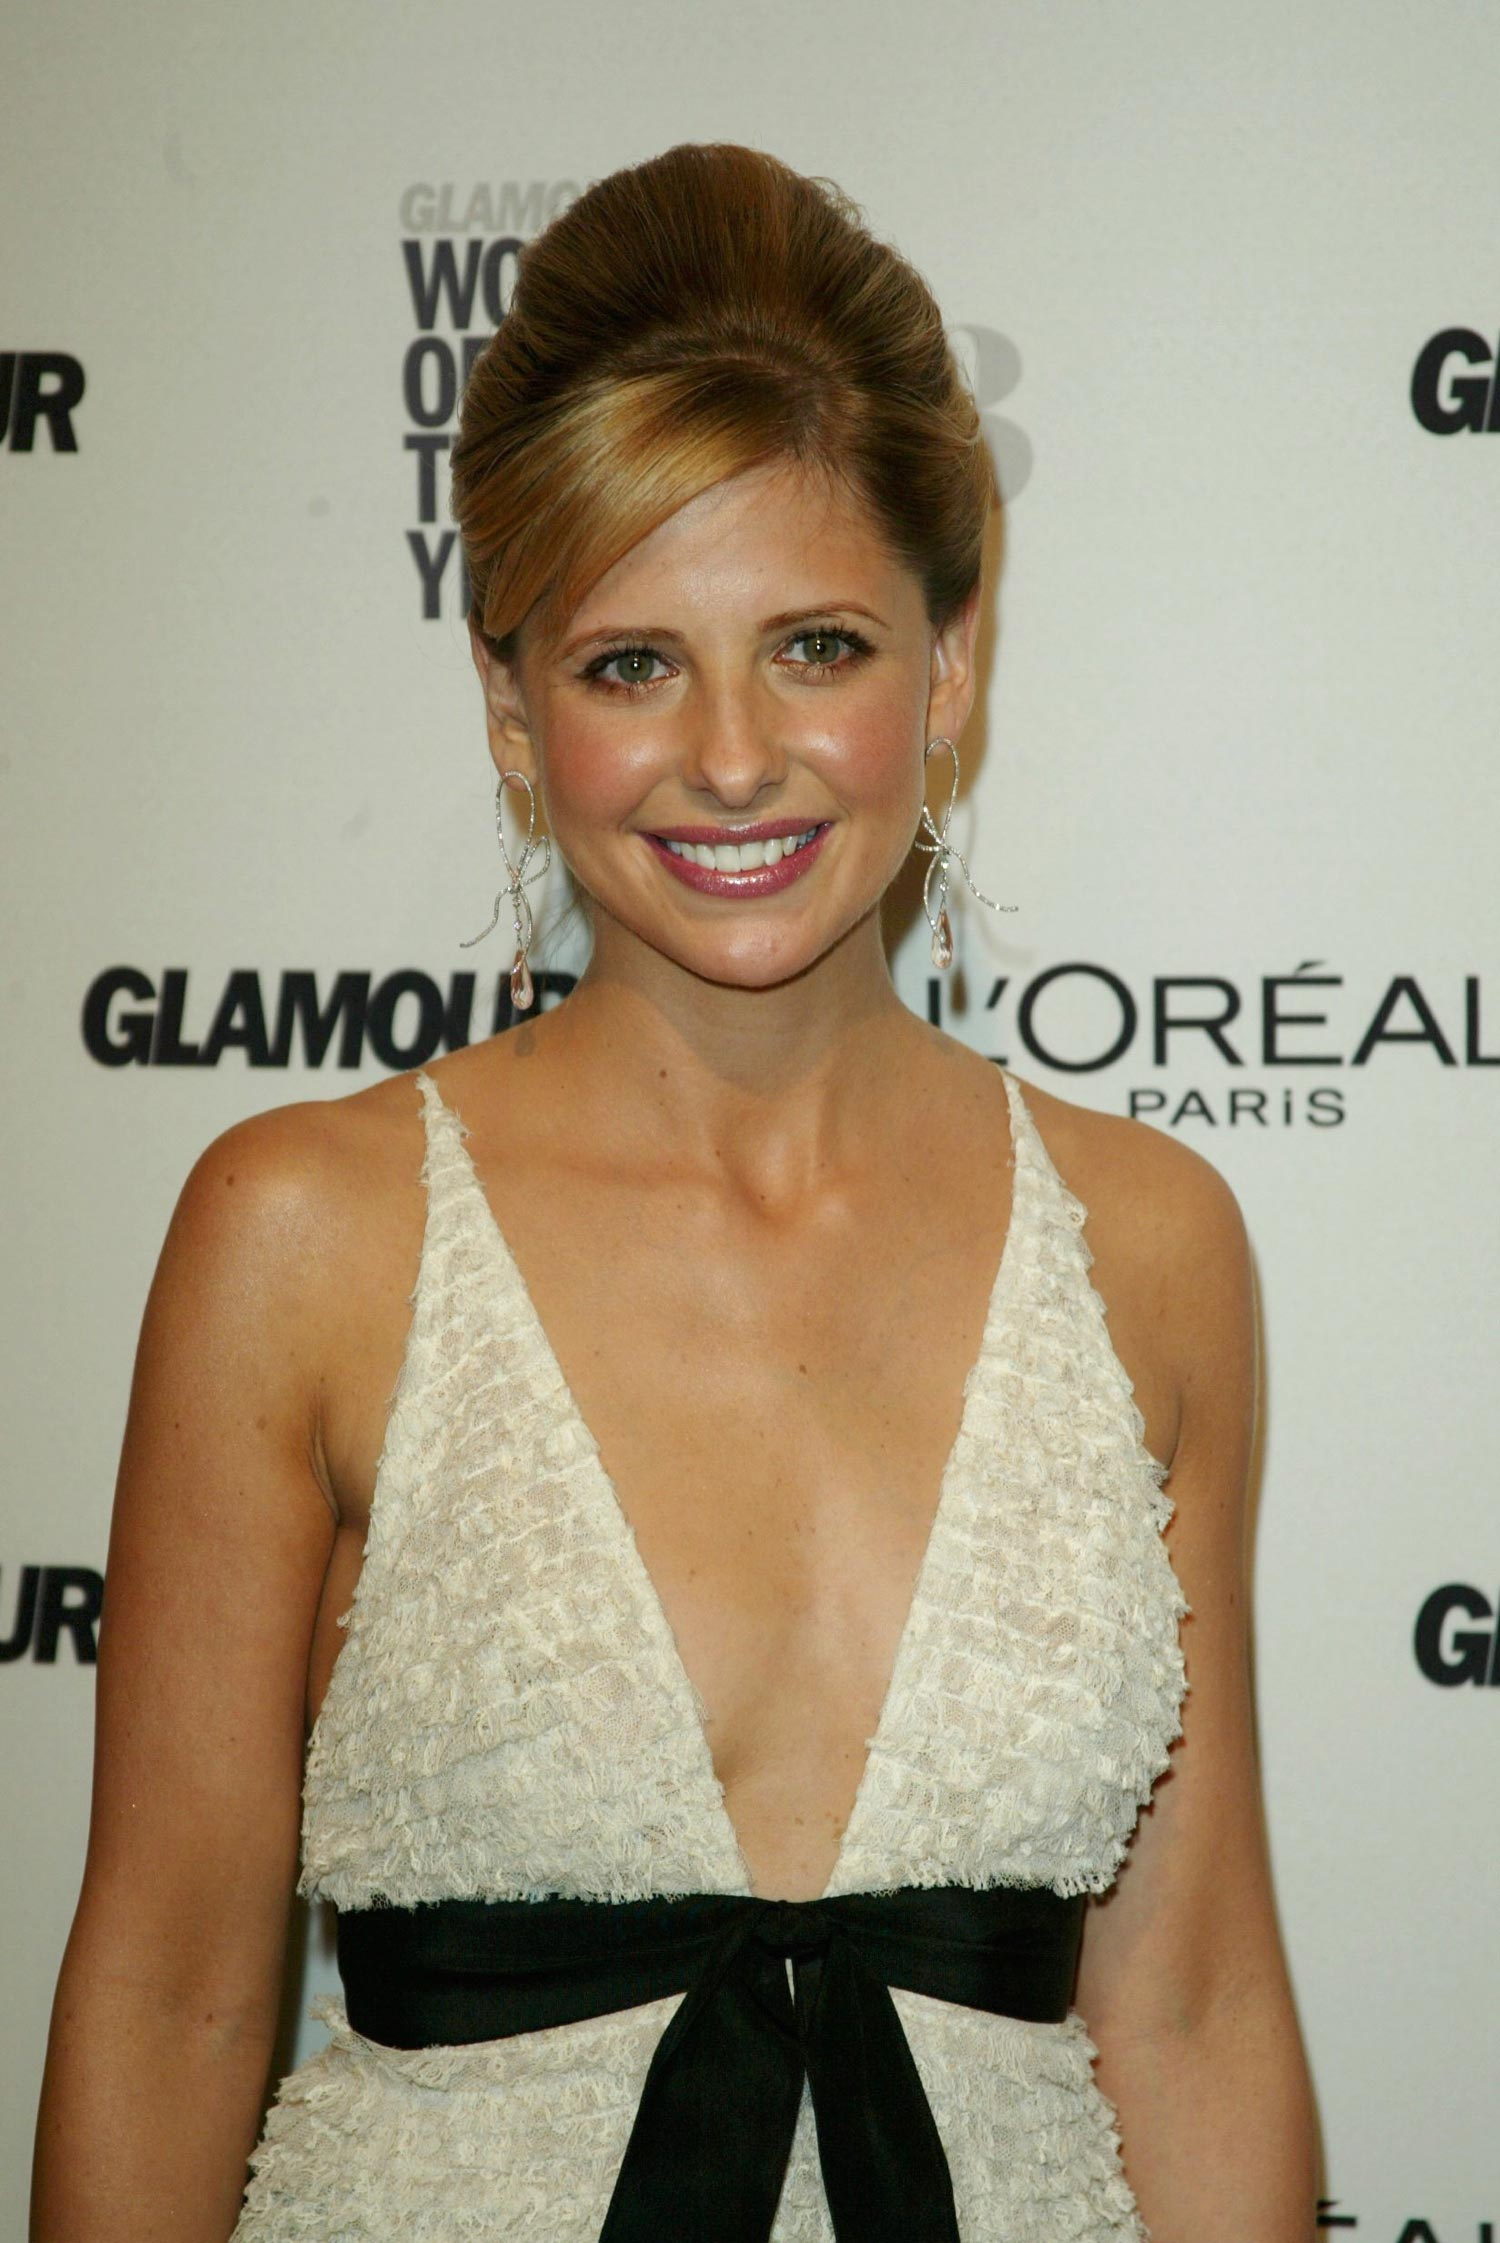 IMG/jpg/sarah-michelle-gellar-14th-glamour-mag-women-year-awards-hq-33-1500. (...)